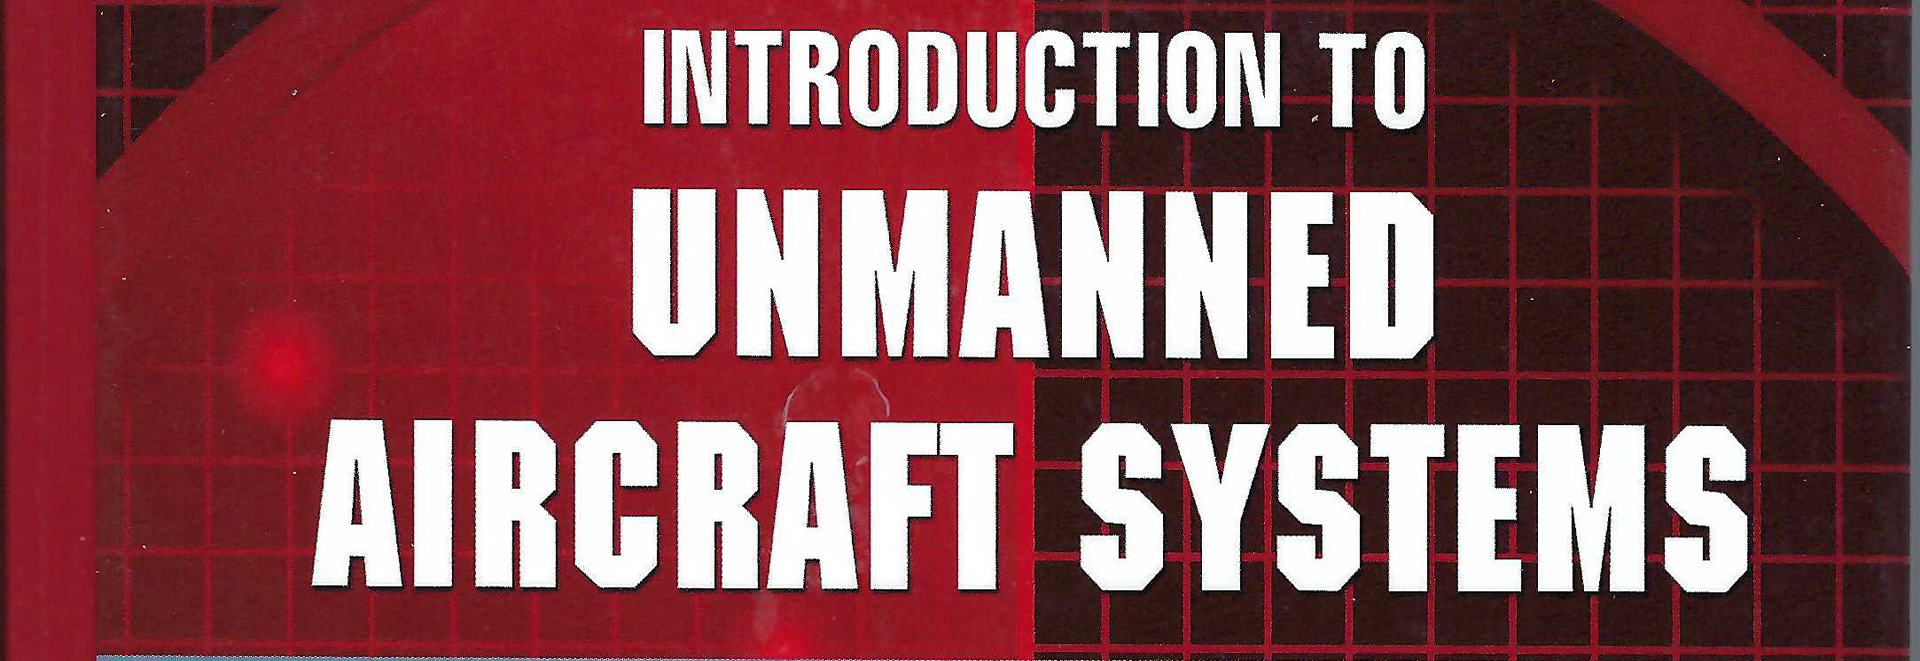 UAS-101   Introduction to Unmanned Aircraft Systems